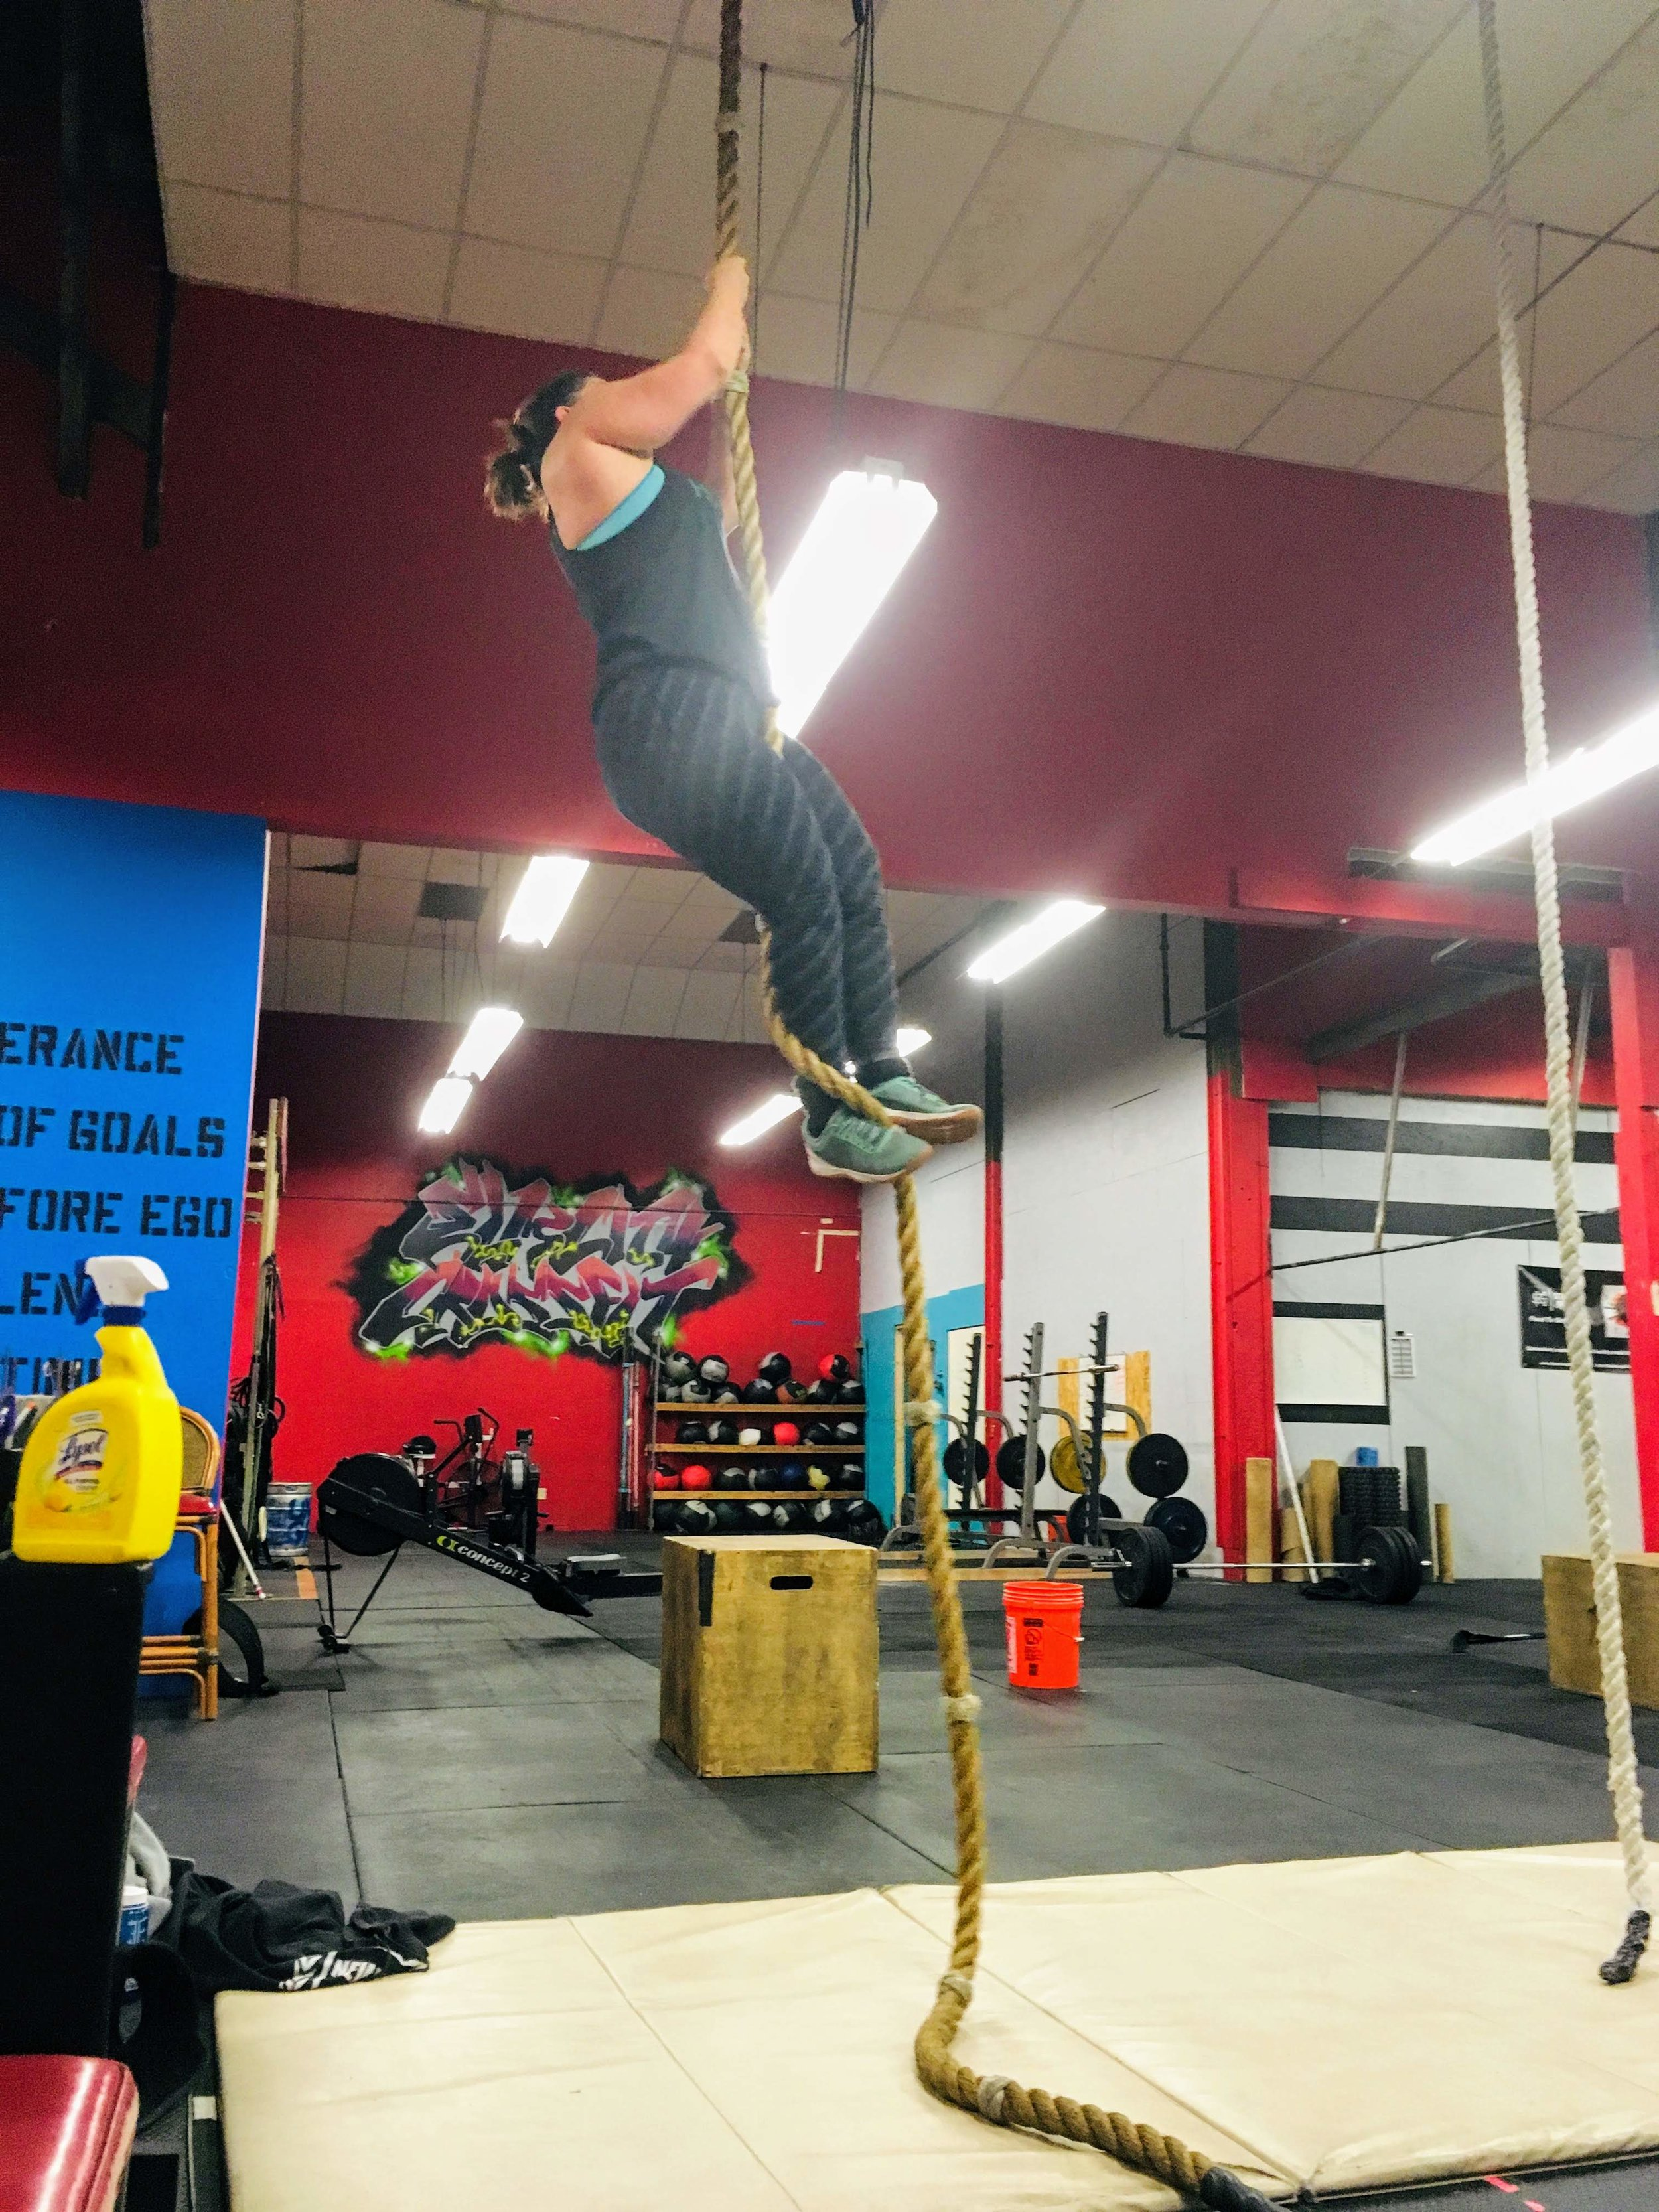 Moving on up… literally!  Awesome work on your rope climb, Marissa!